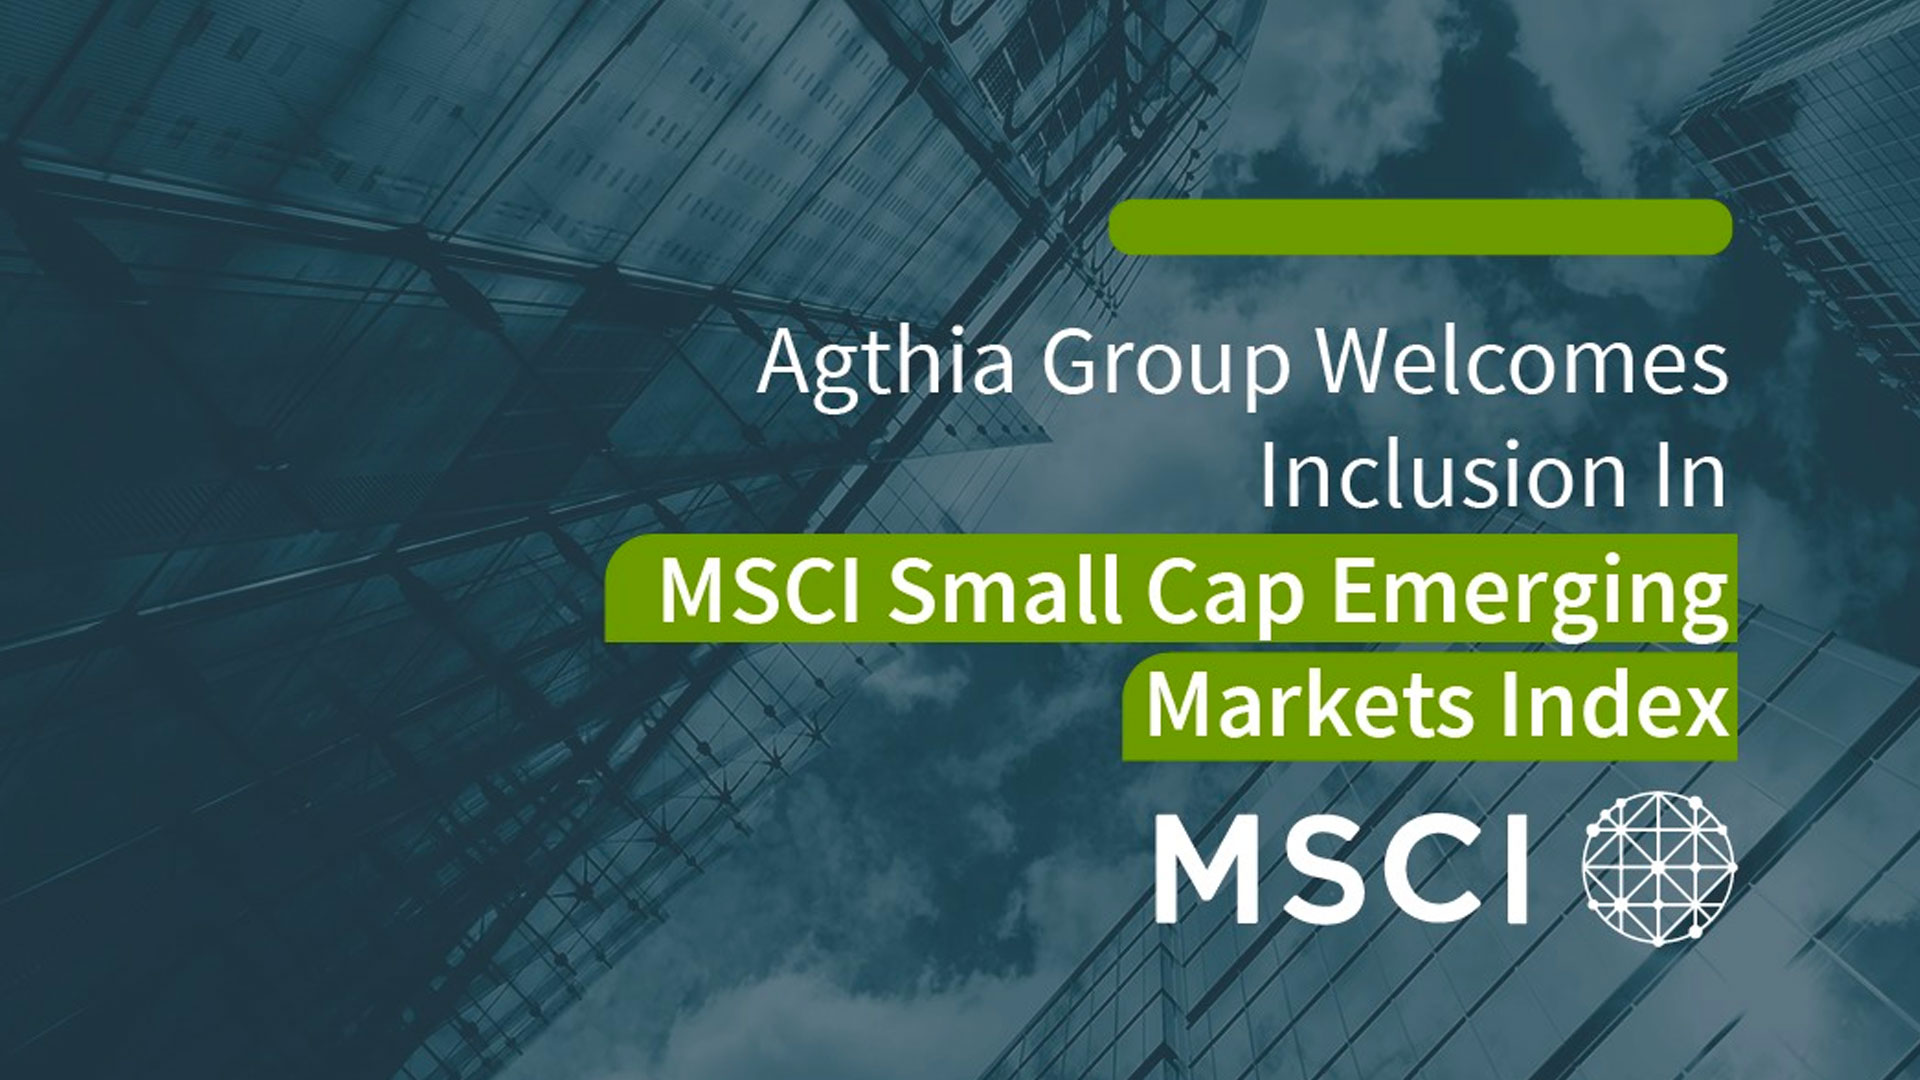 Agthia Group Welcomes Inclusion in the MSCI Small Cap Emerging Markets